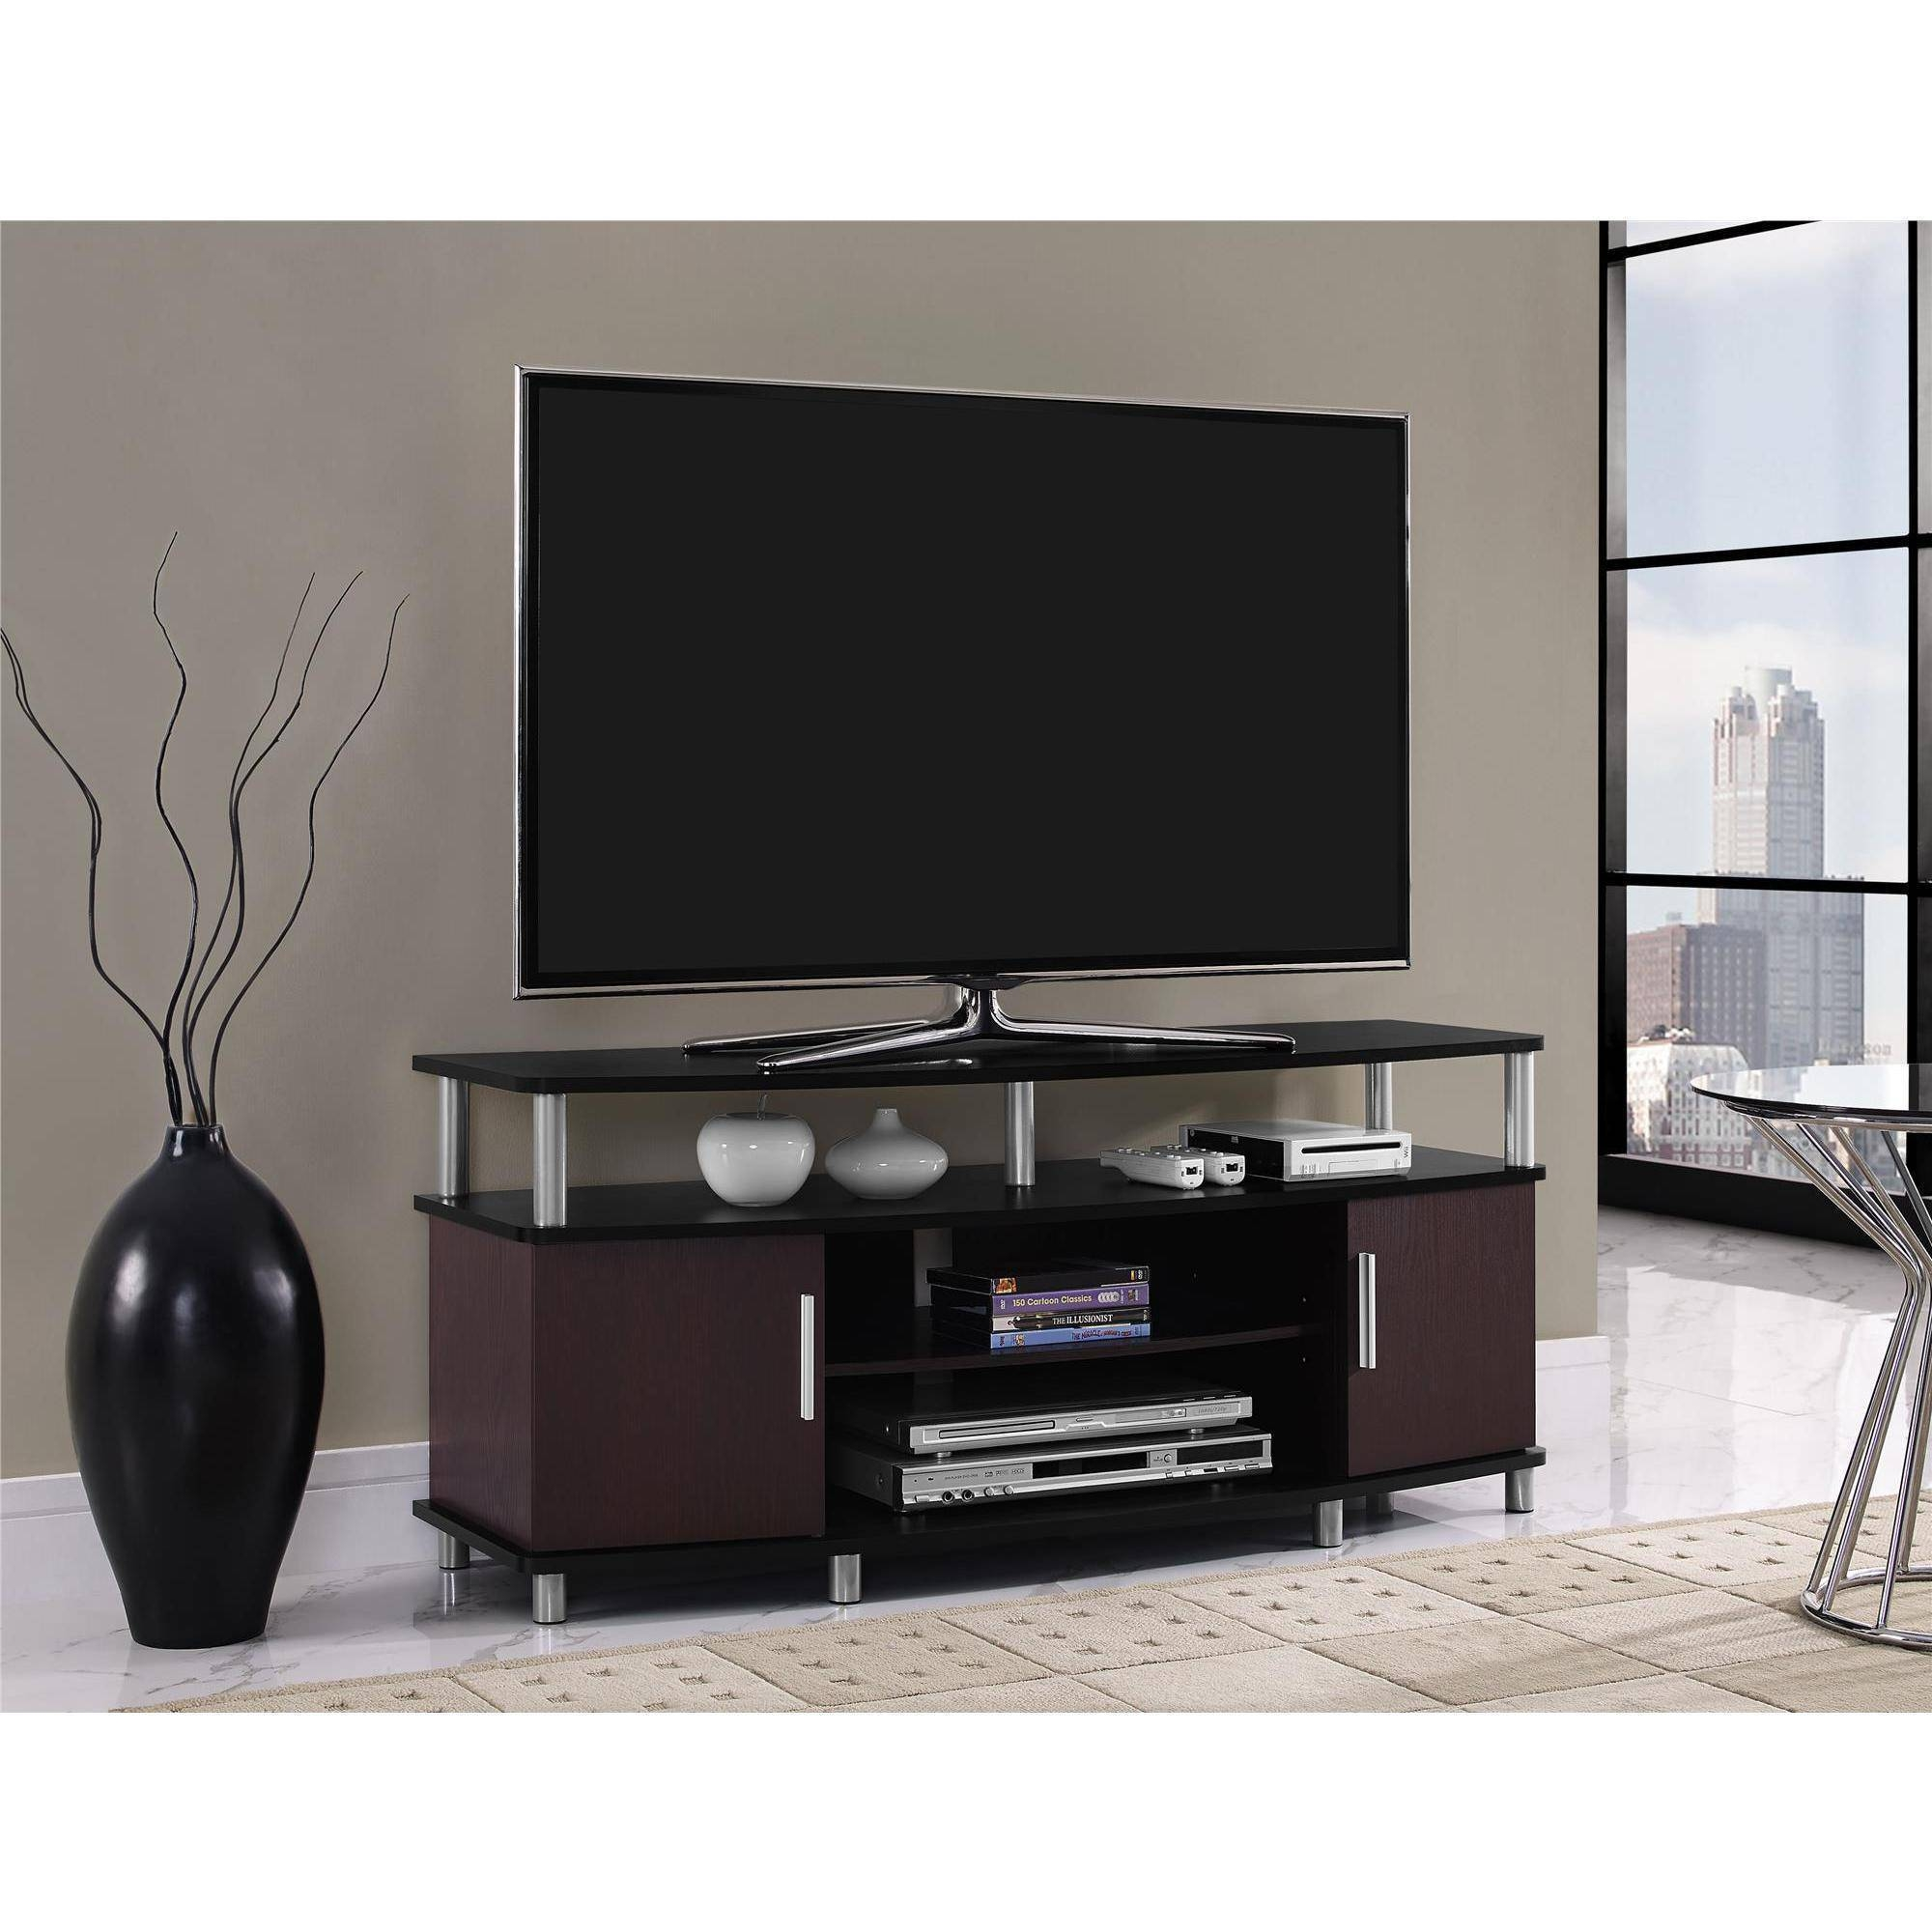 Tv Stands & Entertainment Centers - Walmart inside Long Tv Stands Furniture (Image 13 of 15)